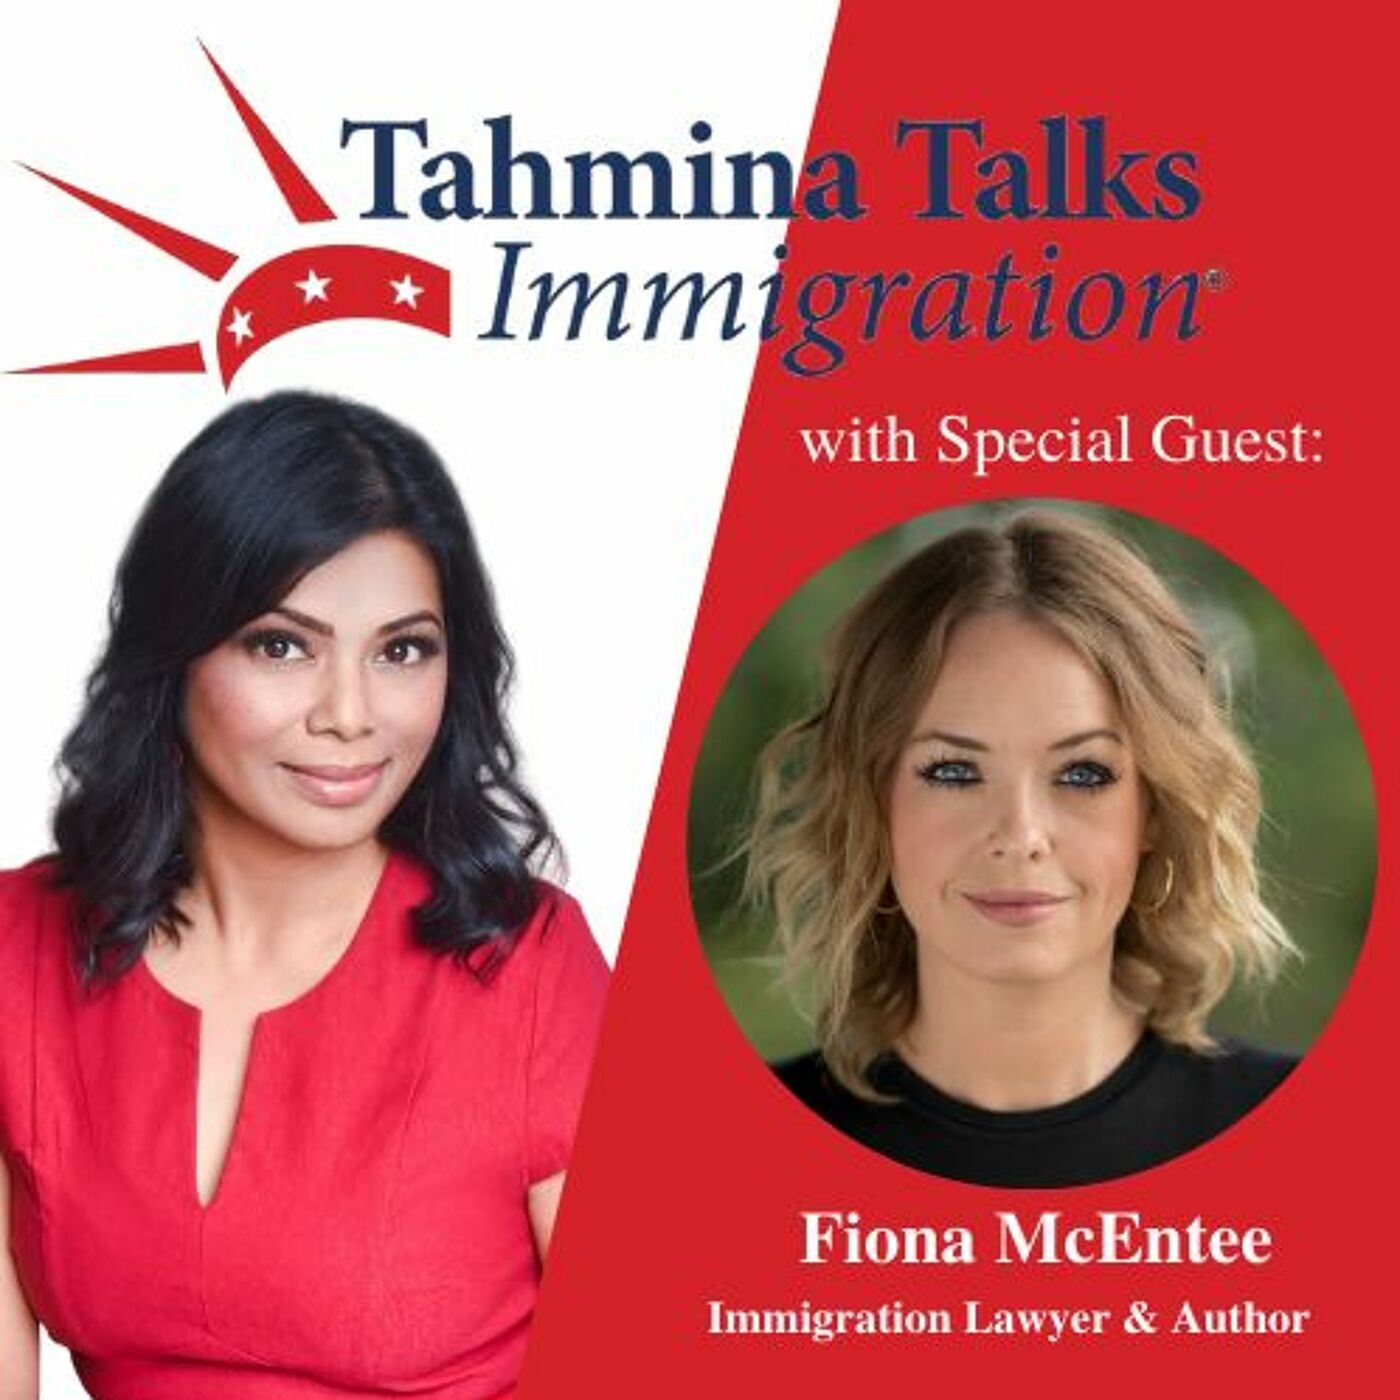 #109 Legal Heroes Series- Fiona McEntee, Immigration Lawyer & Author